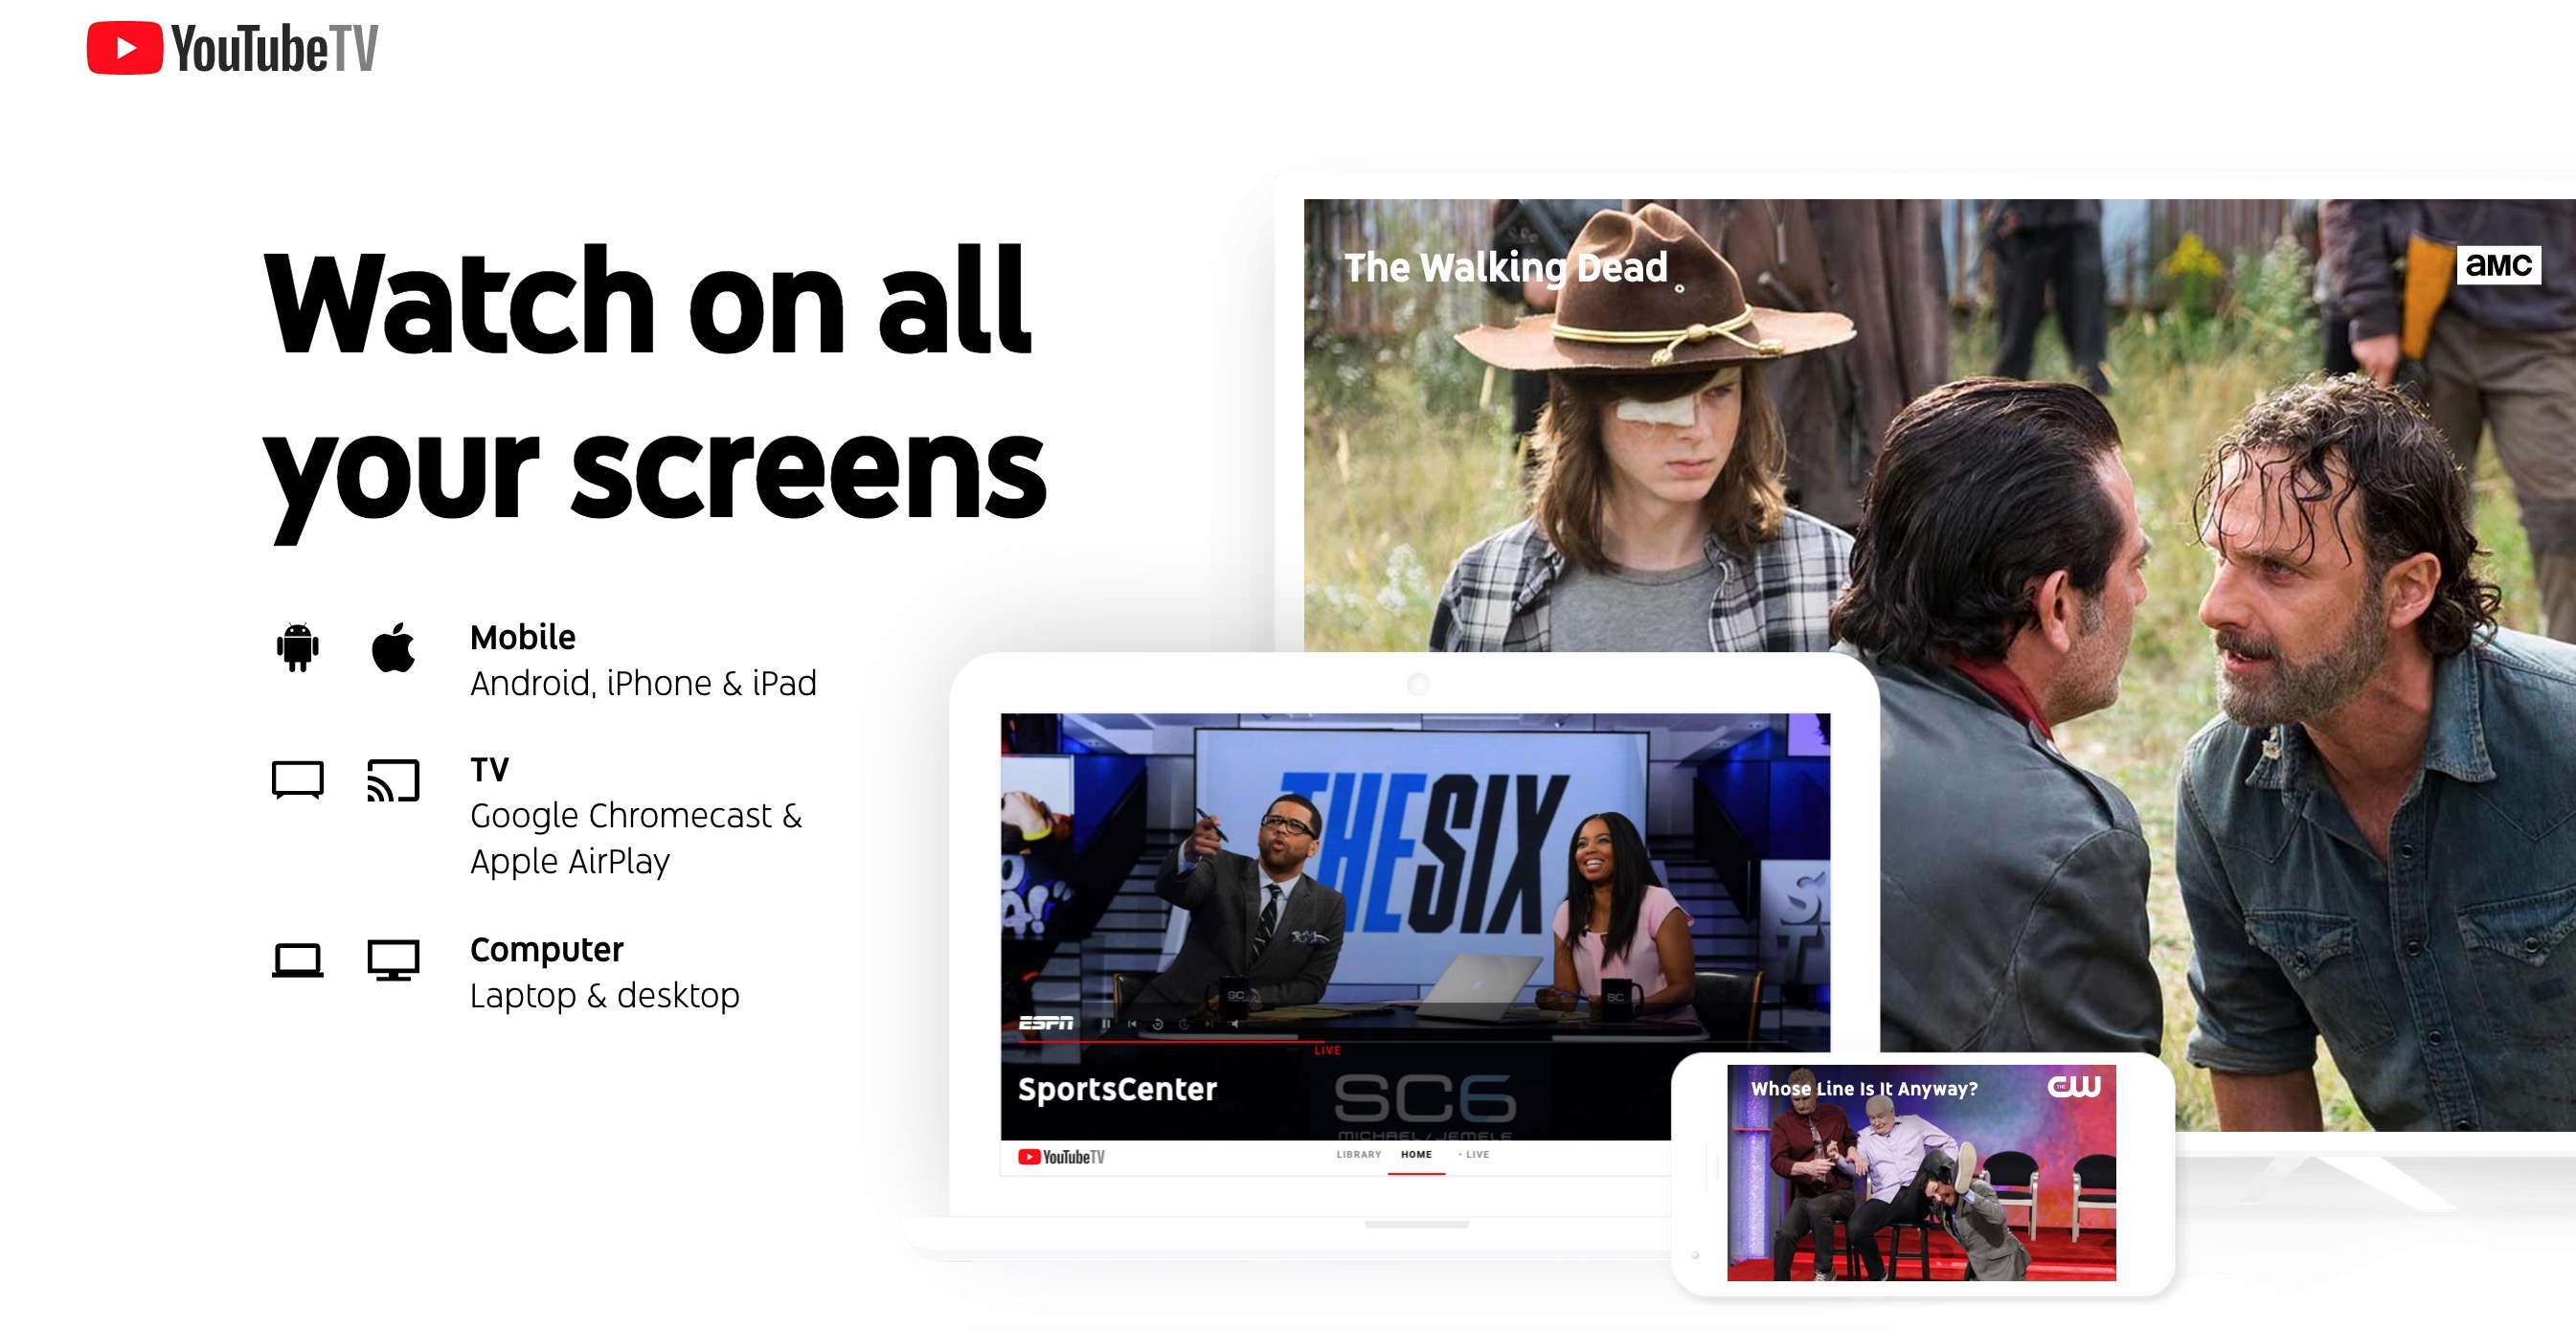 YouTube TV is now available on select Android tablets